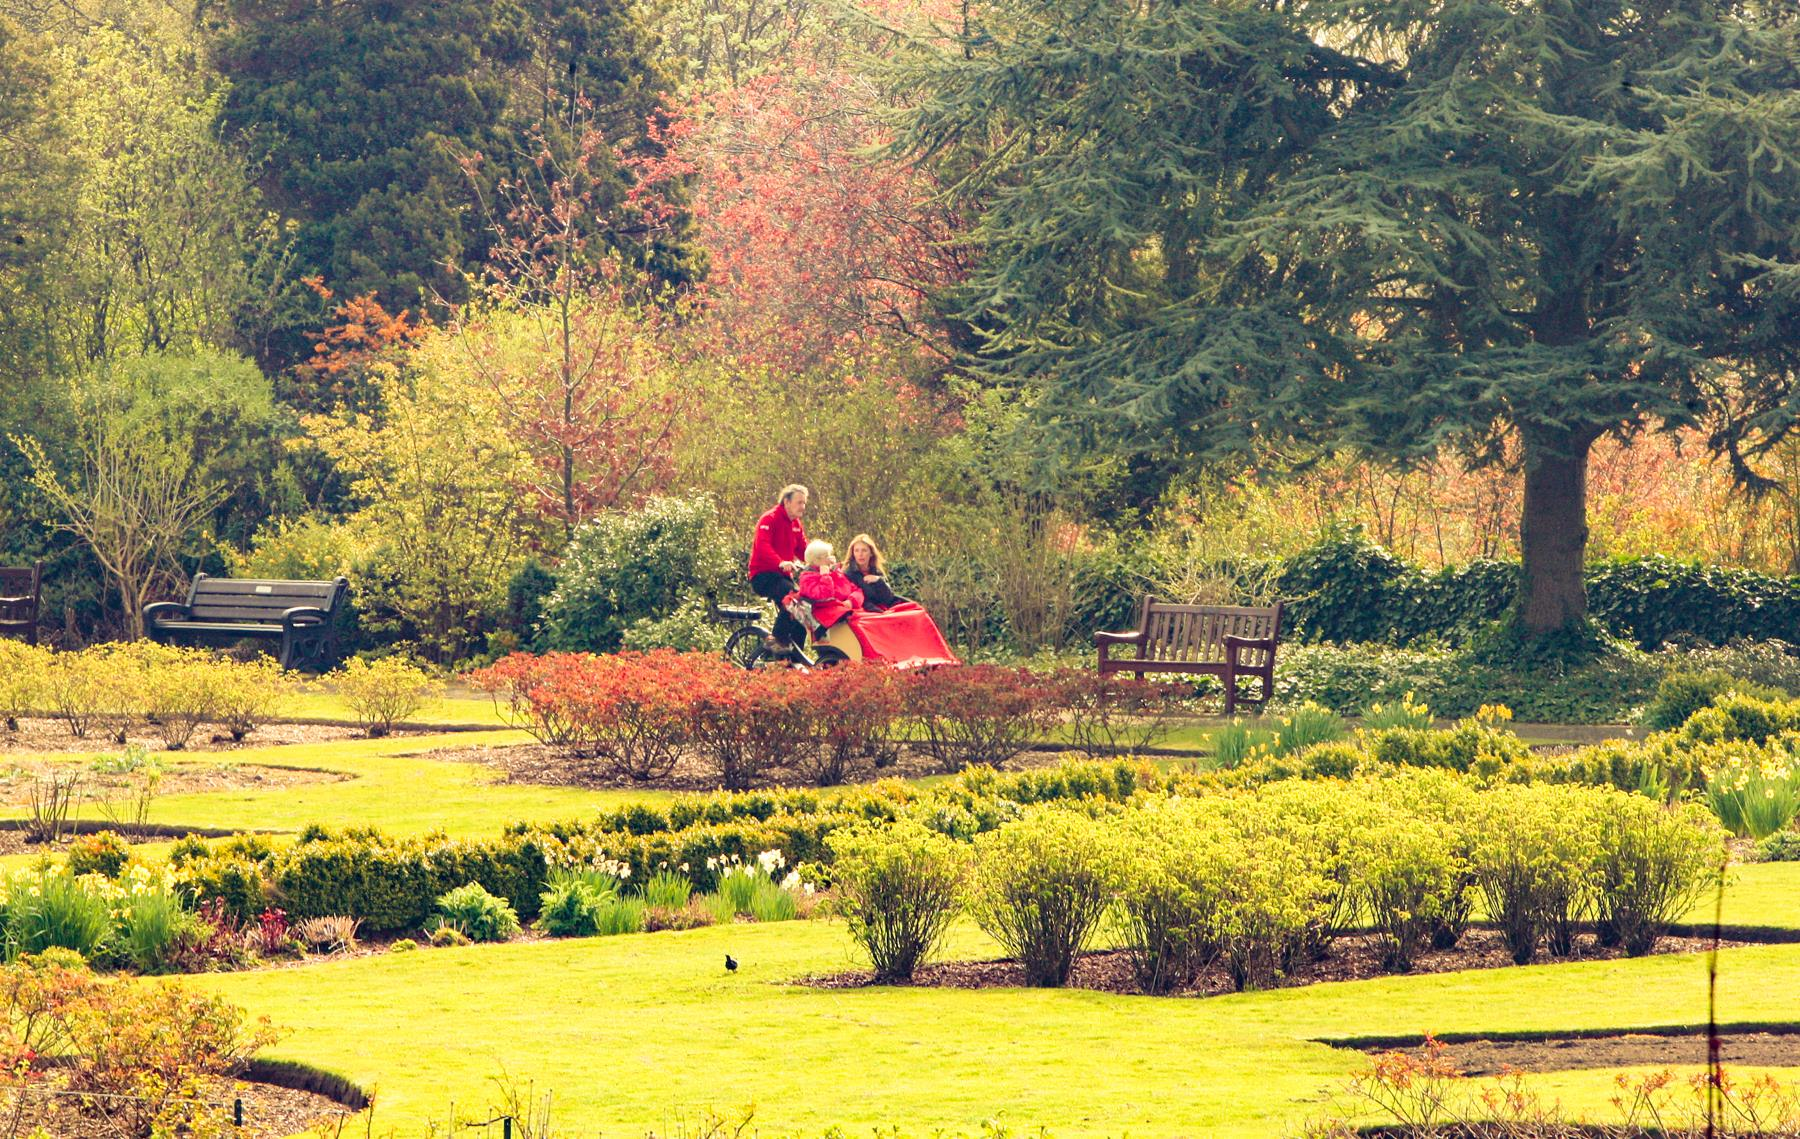 Enjoying a trishaw ride through the Laird's Garden of Pittencrieff Park